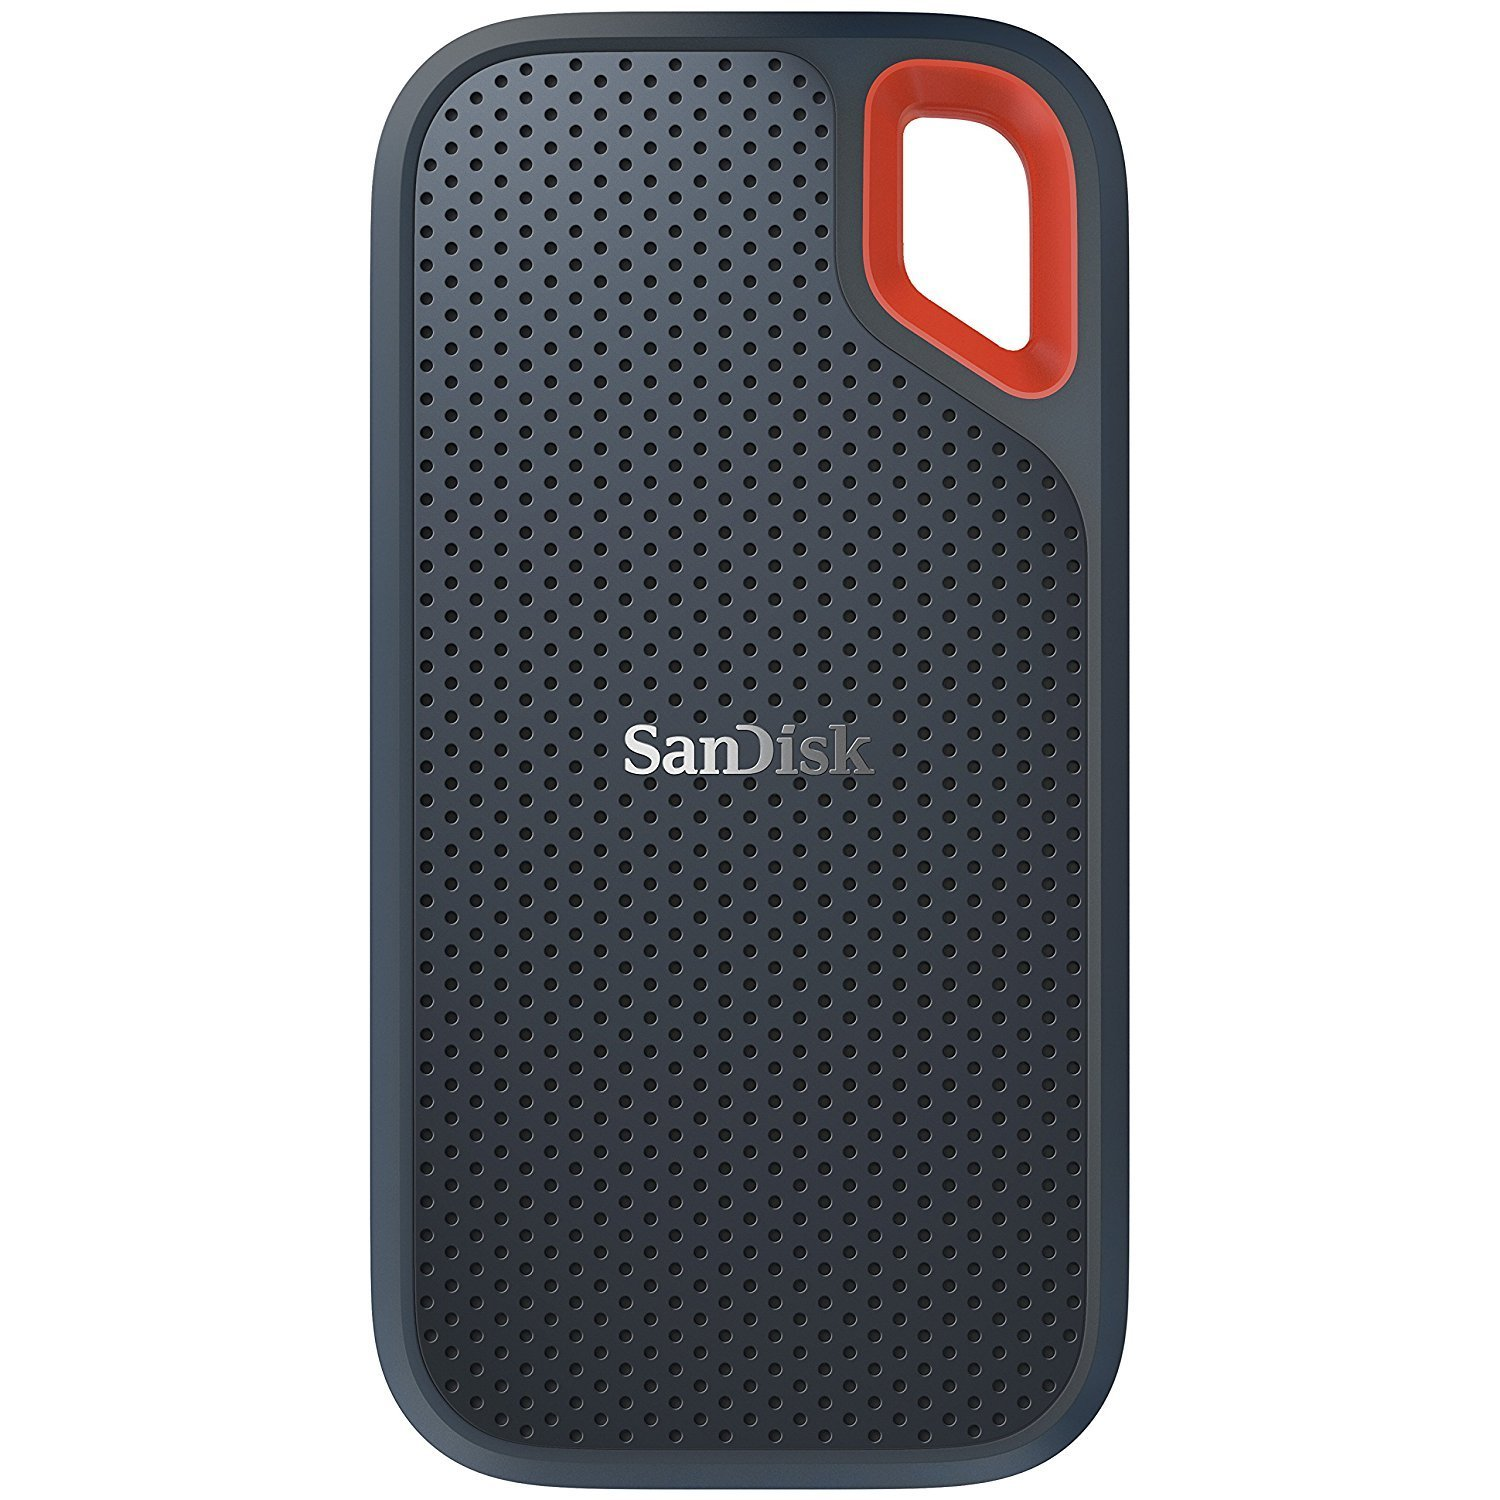 SanDisk 500GB Extreme Portable SSD